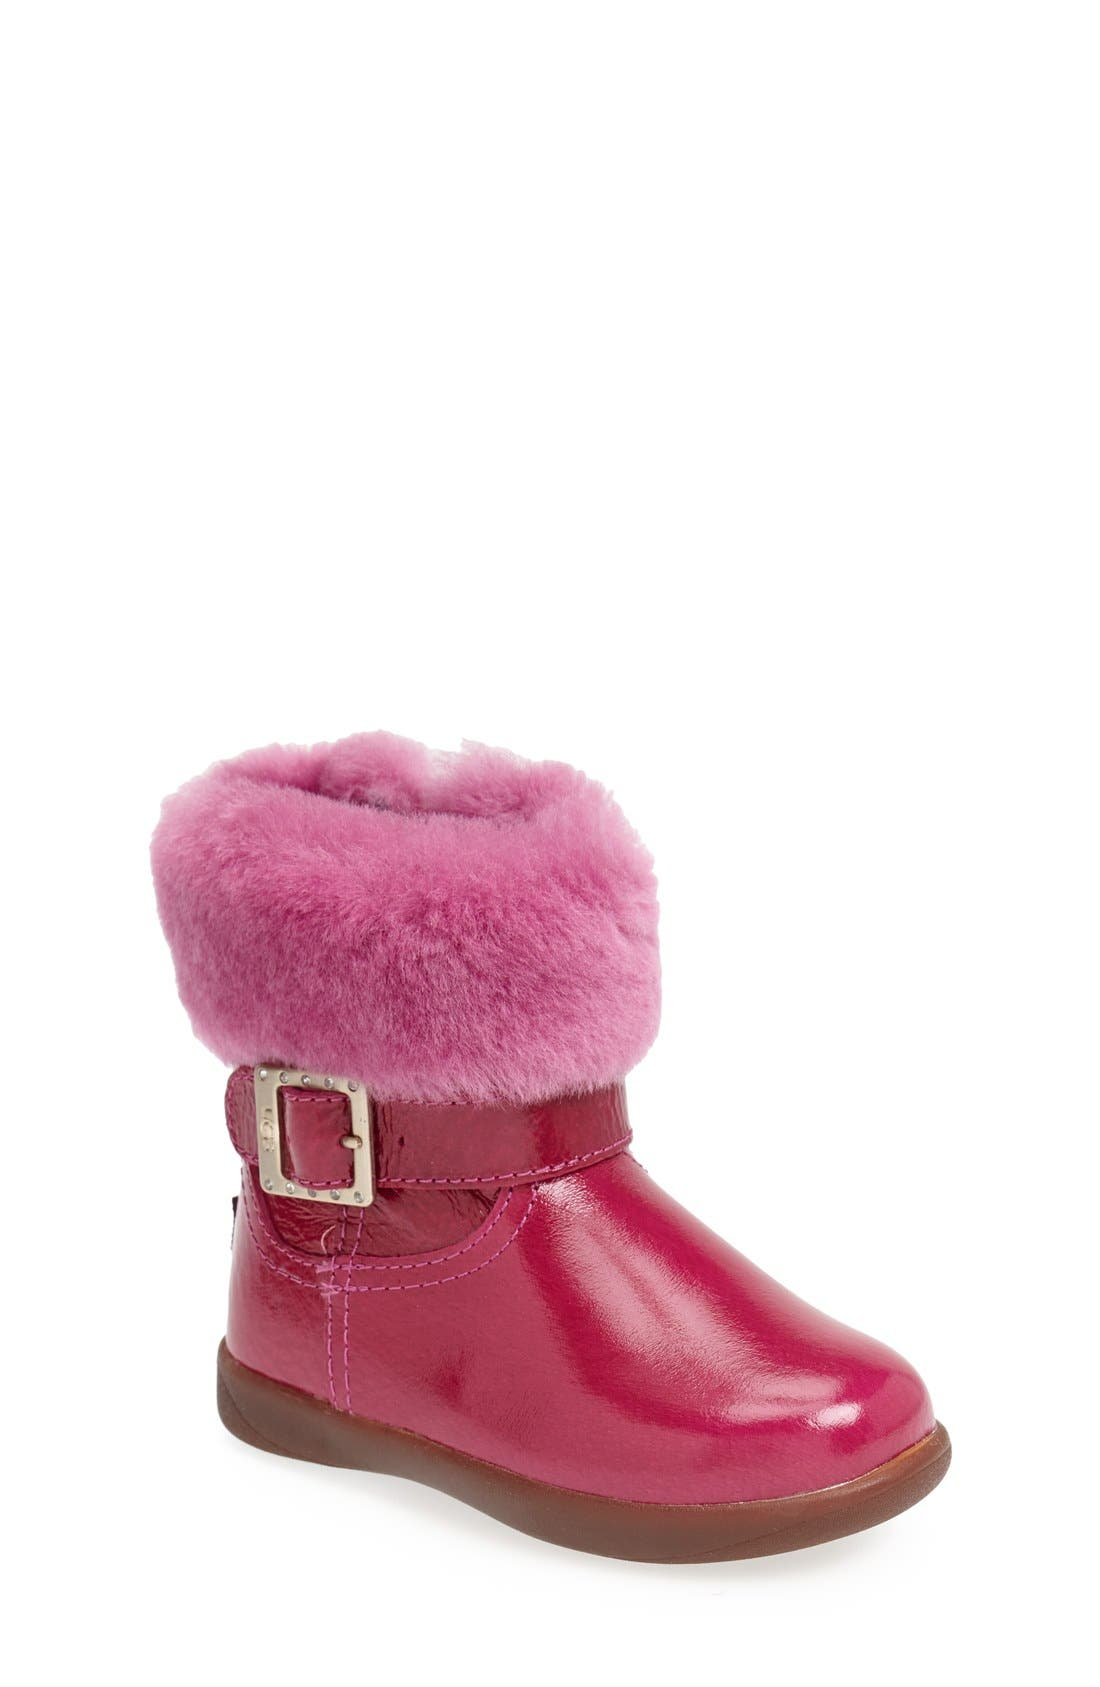 Gemma Boot,                         Main,                         color, Victorian Pink